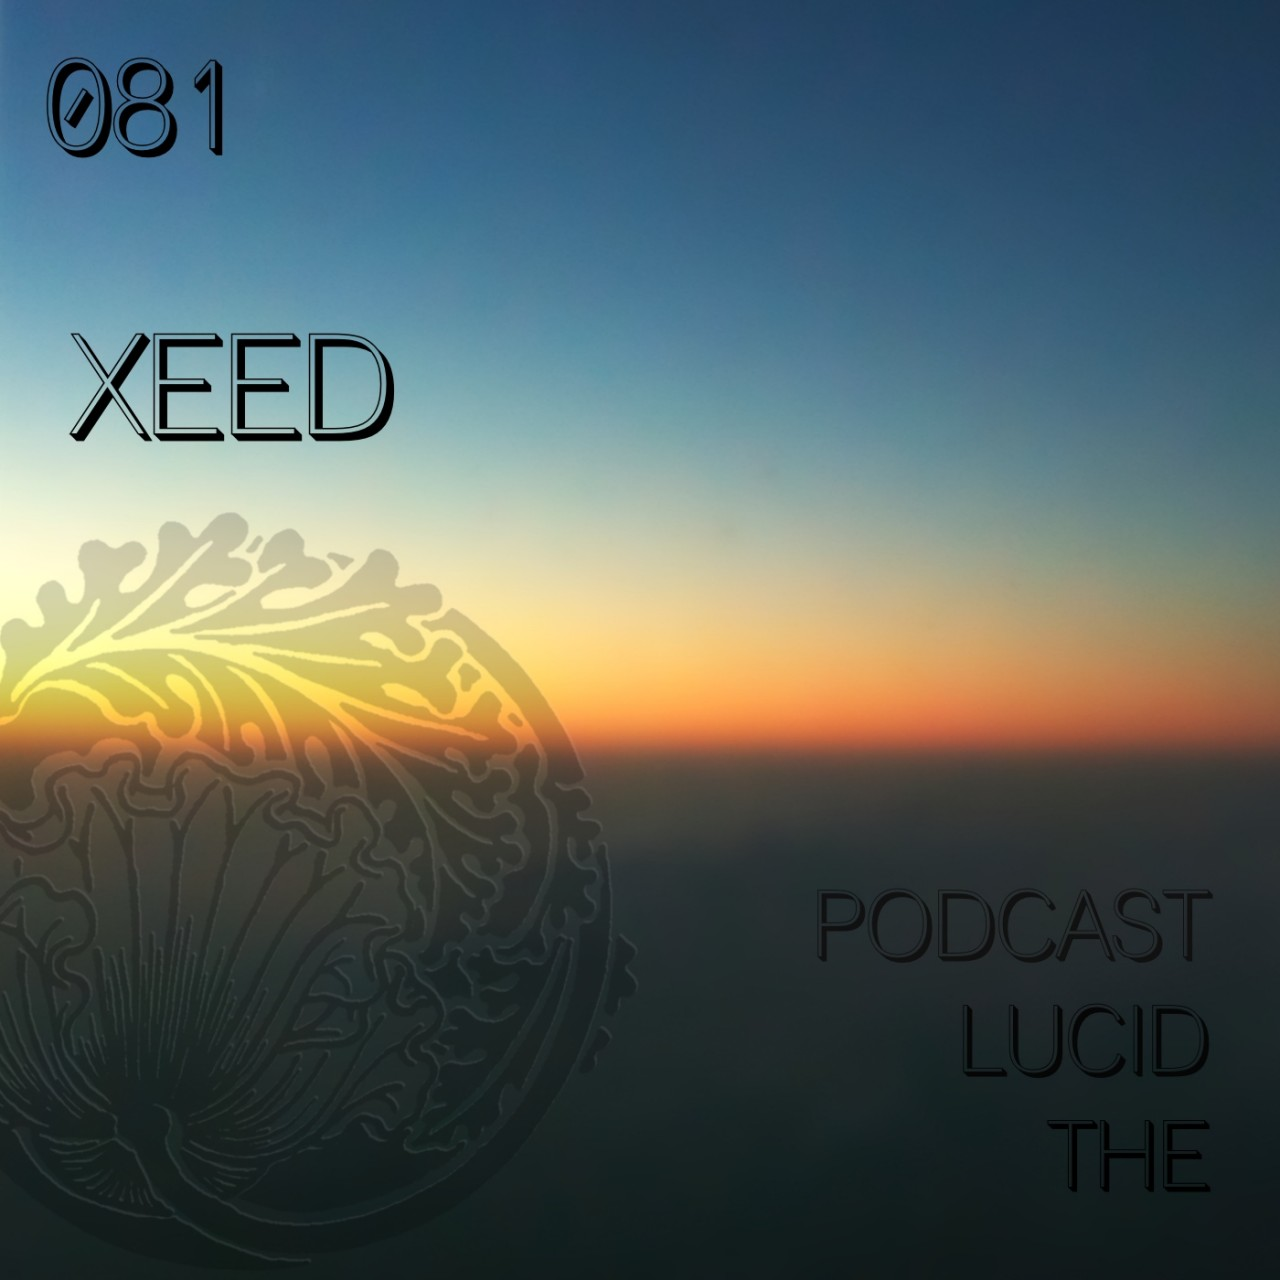 The Lucid Podcast 081 XEED